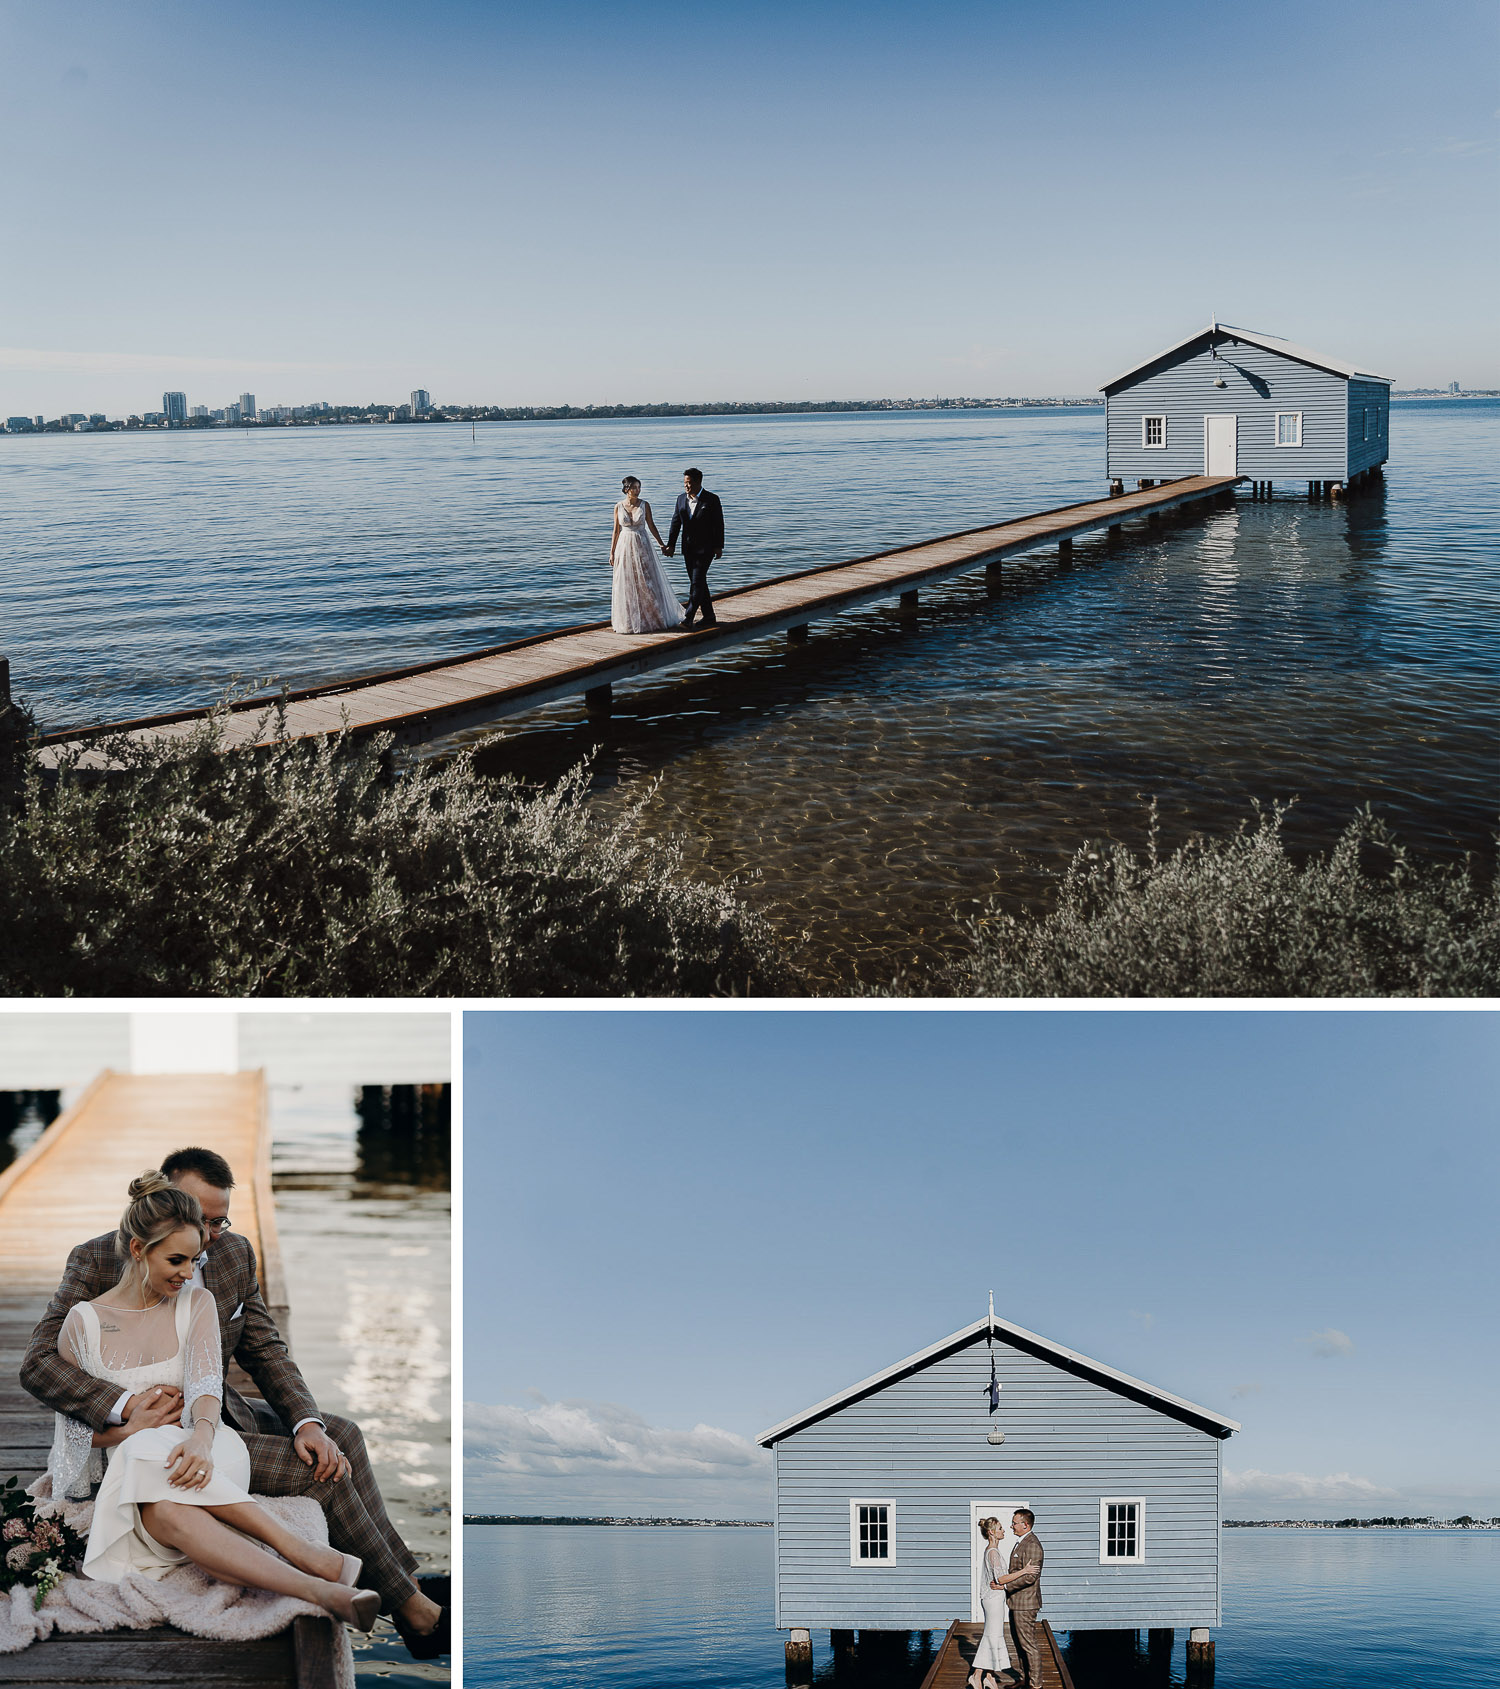 Casual photoshoot at blue boat house, couple prewed and engagement shoot at blue boat house, couple in gown and suit at blue boat house, couple sitting at blue boat house